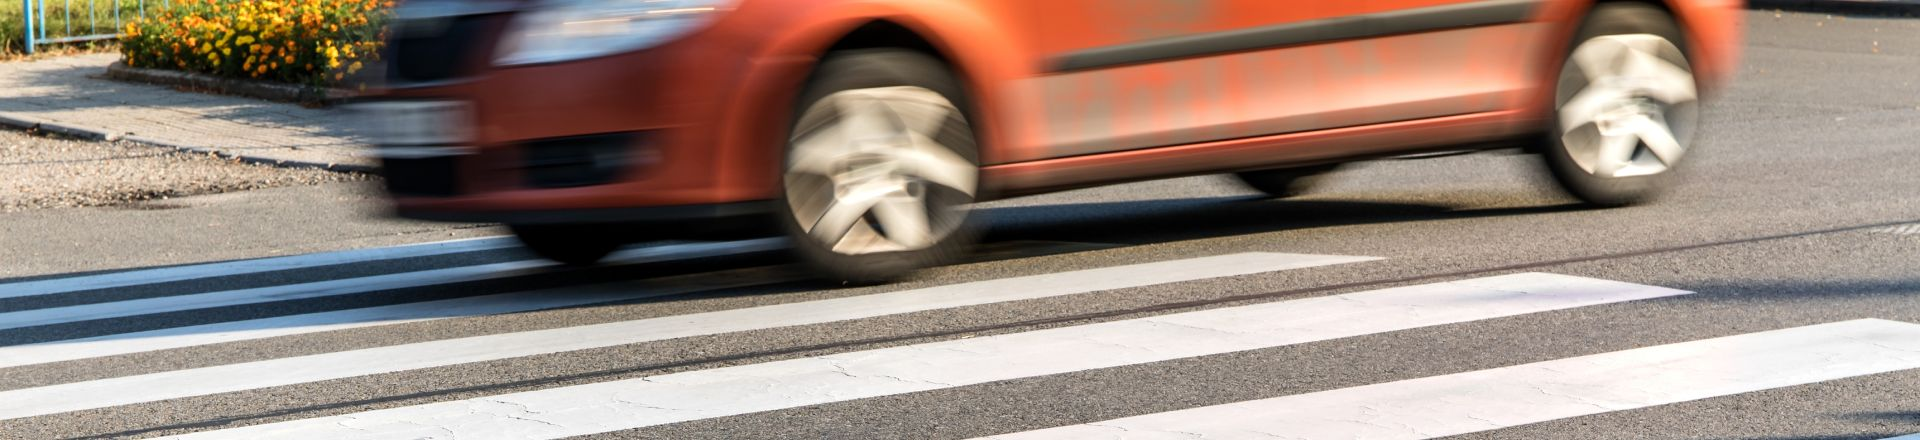 Orange Cars On The Pedestrian Crossing. Pedestrian Accidents Injury Lawyer